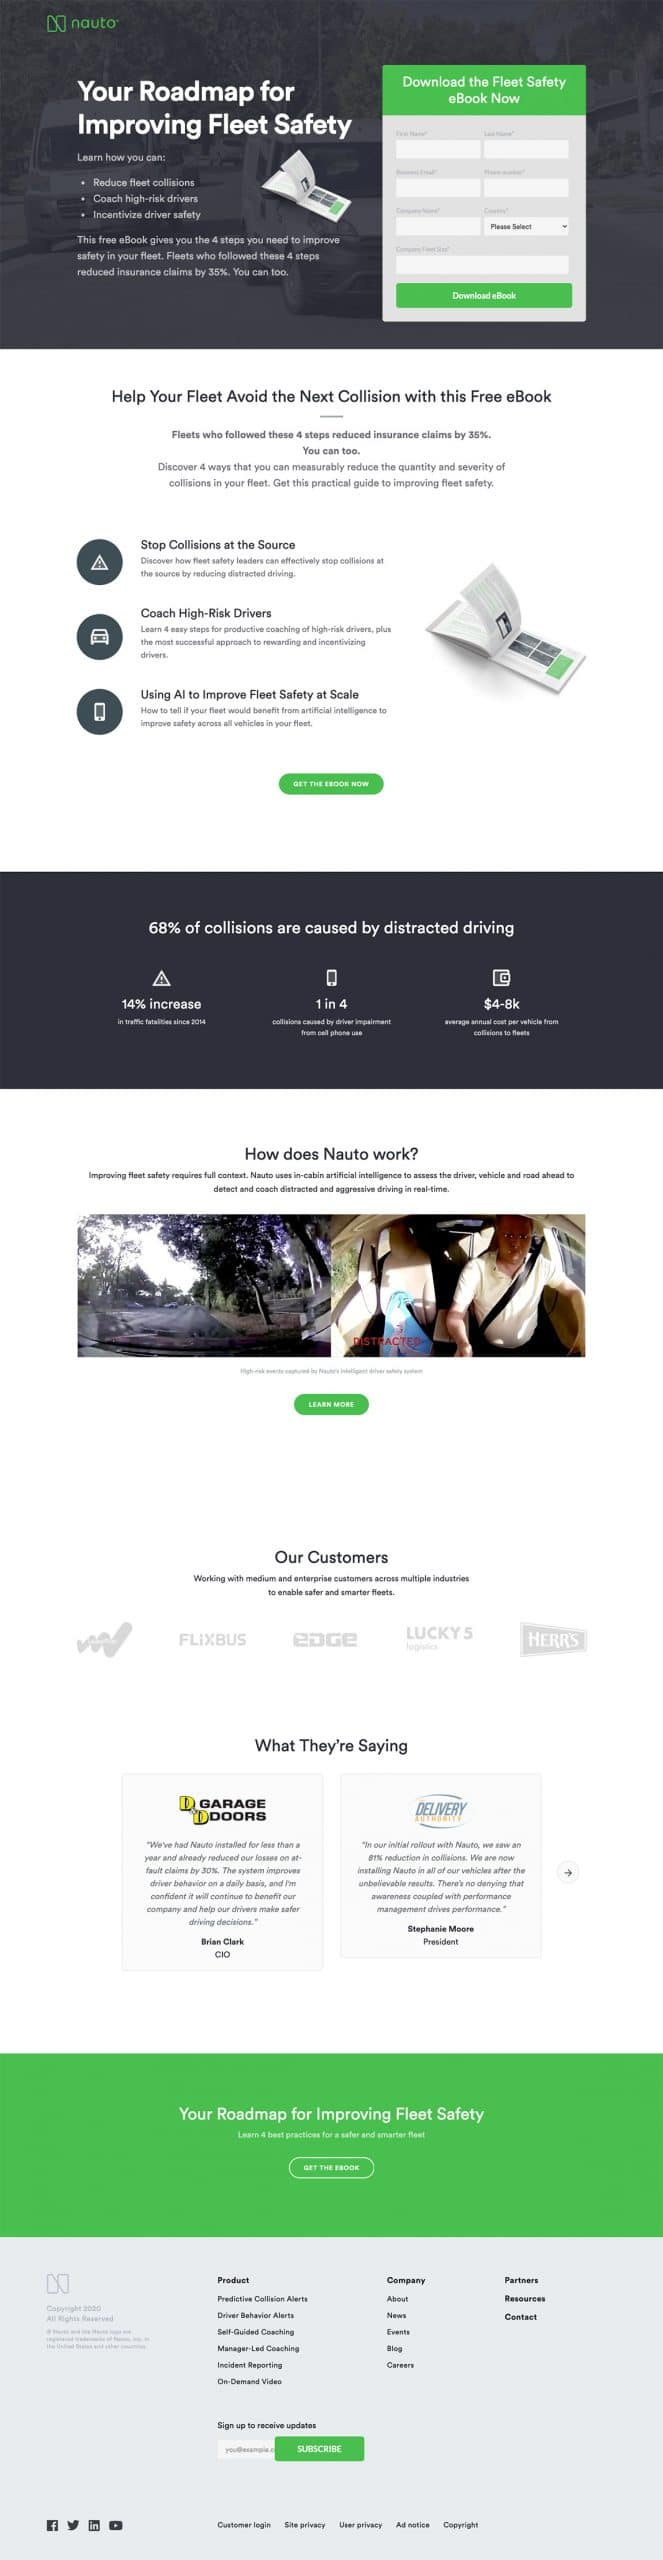 best landing page by Nauto example